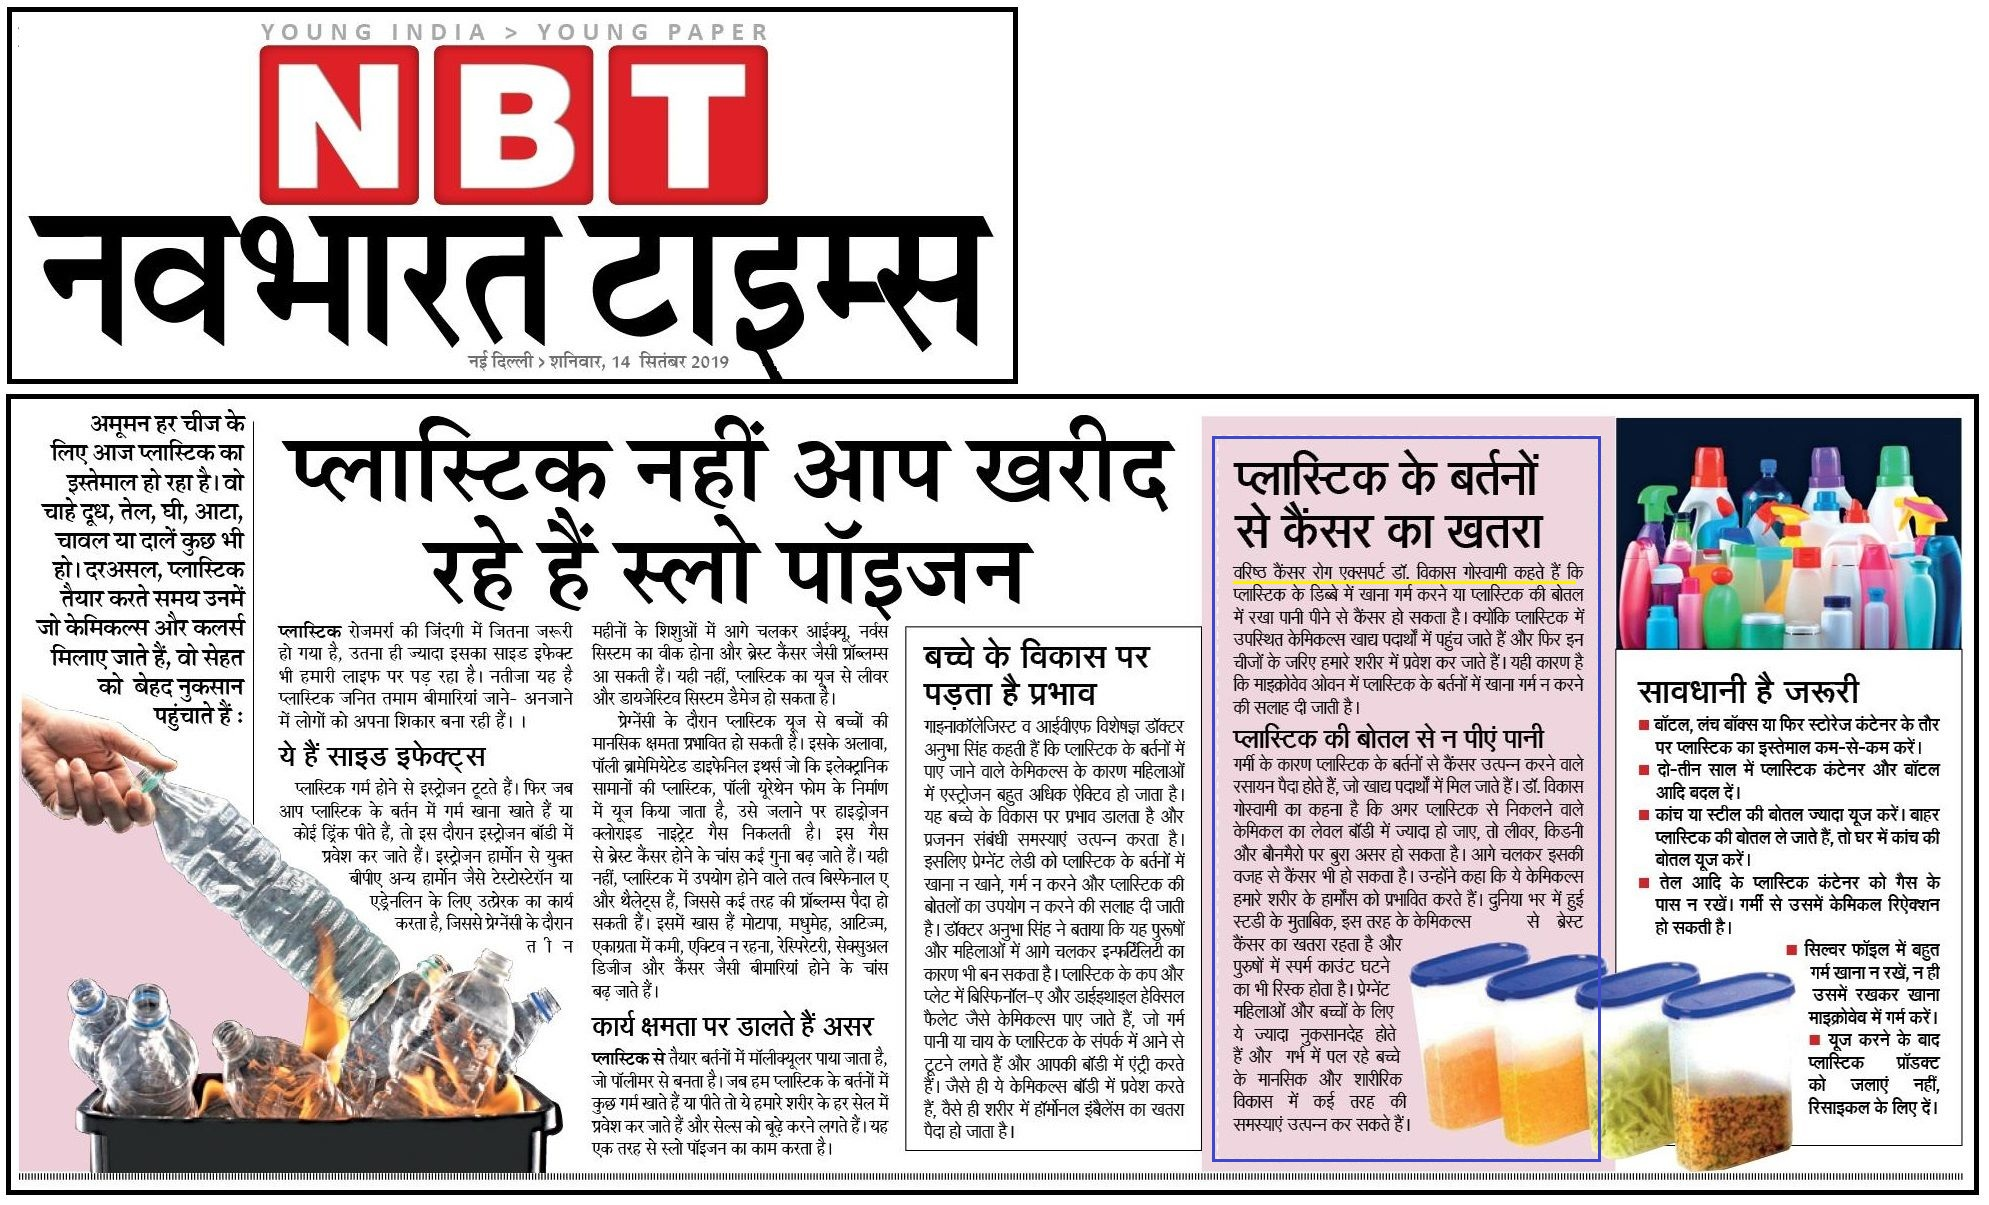 Plastic and poison NavBharat Times